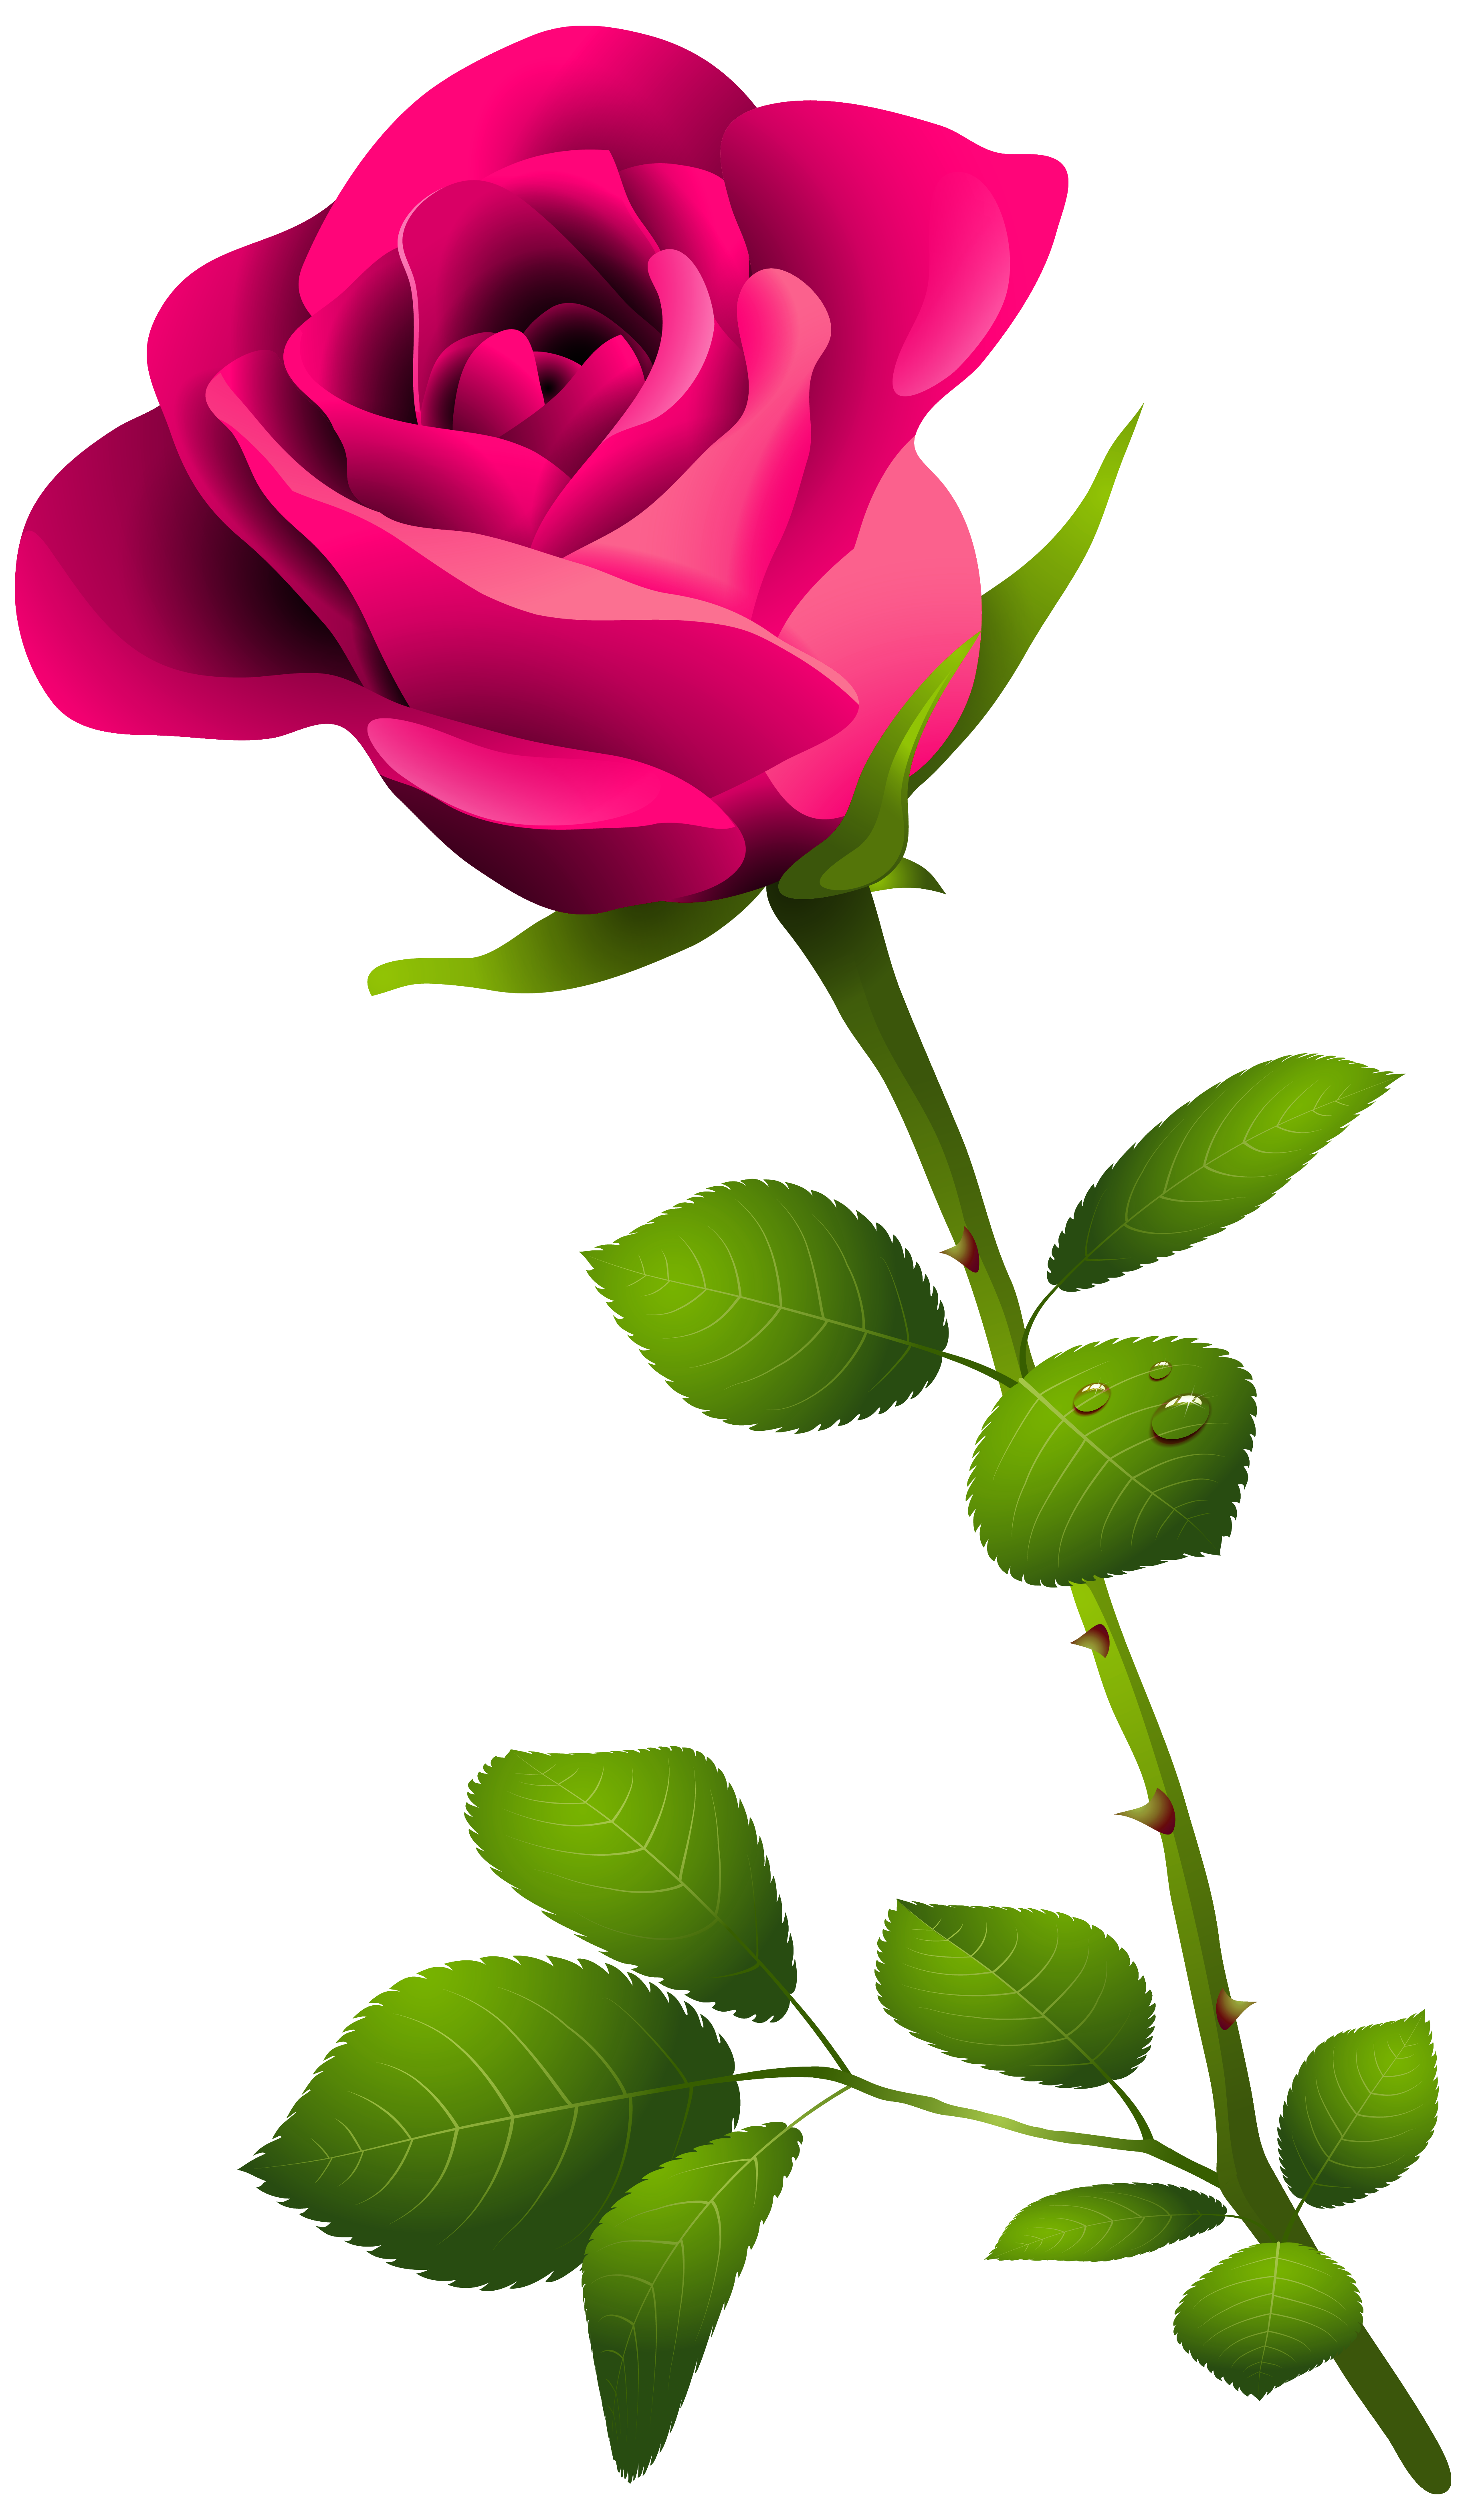 Pink rose flower clipart clipart royalty free Pink Rose with Stem PNG Clipart Image | Gallery ... clipart royalty free